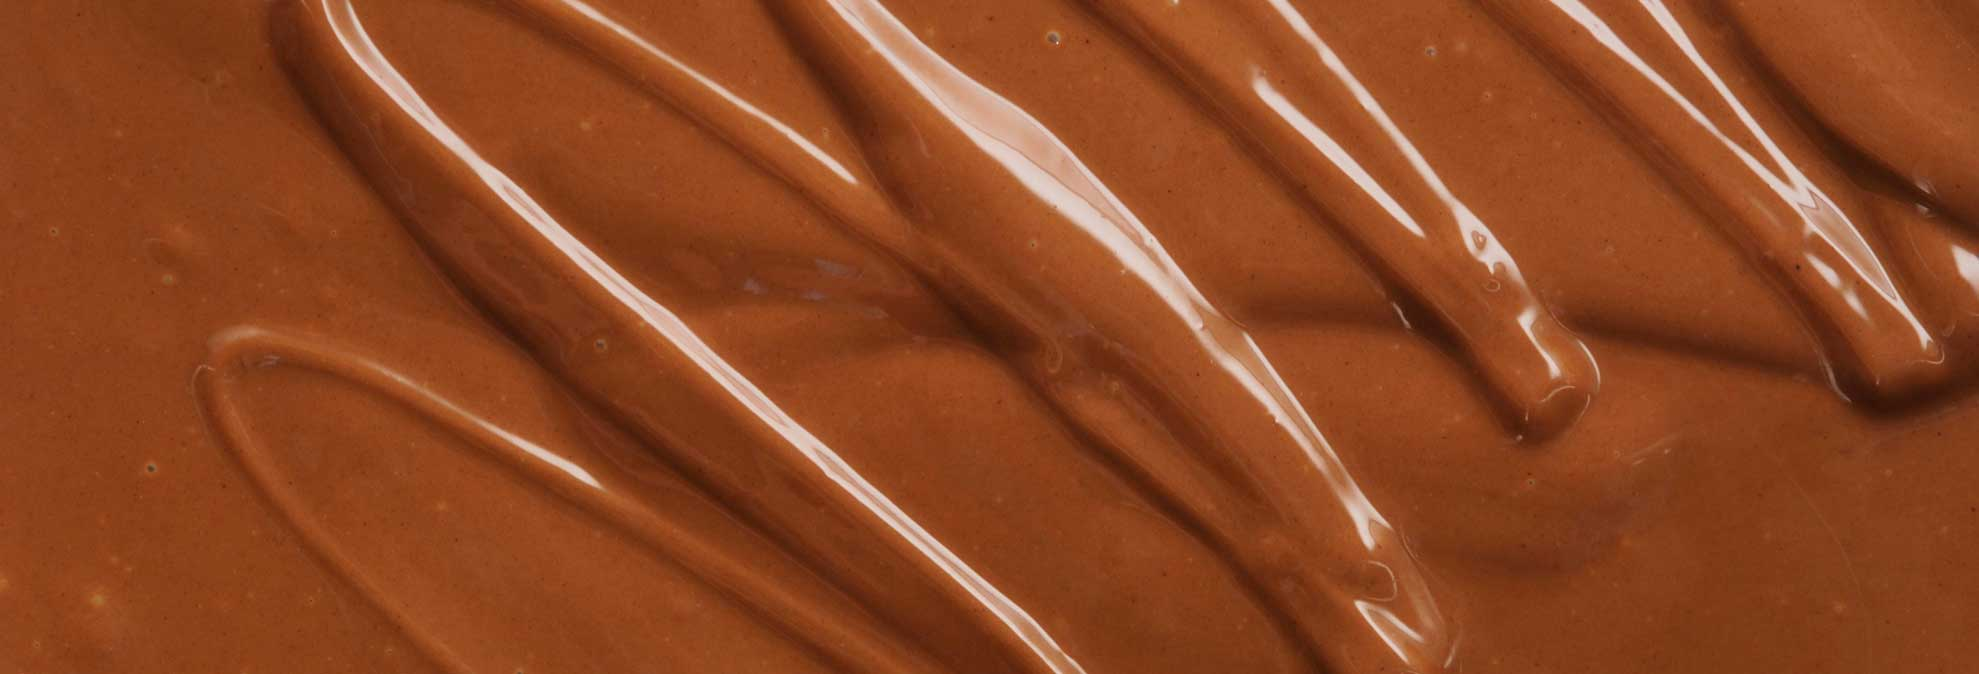 Does Milk Chocolate Have Health Benefits Consumer Reports